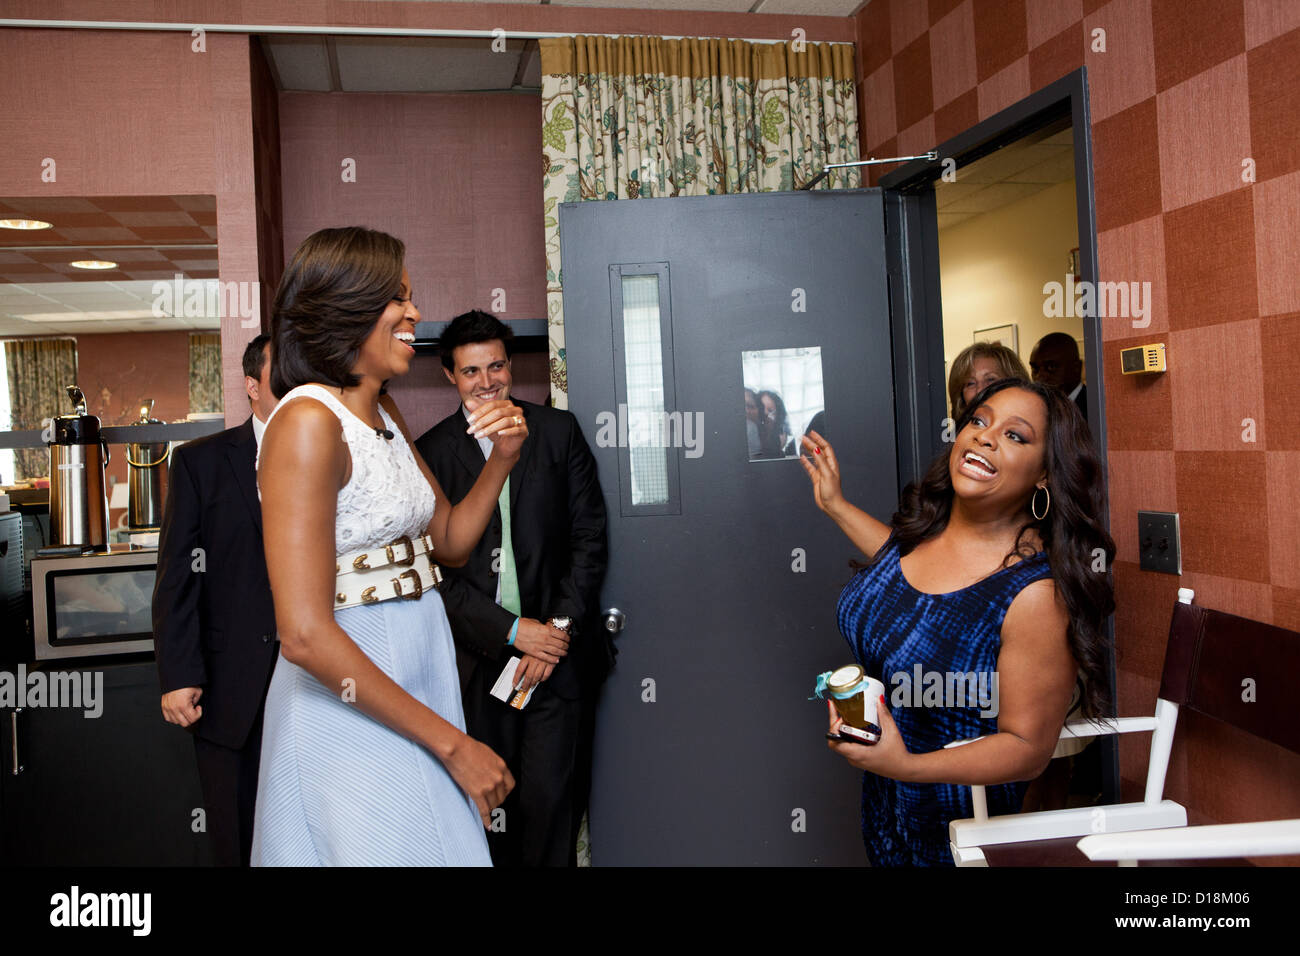 First Lady Michelle Obama greets Sherri Shepherd of 'The View' at the show's studio in New York, N.Y., - Stock Image